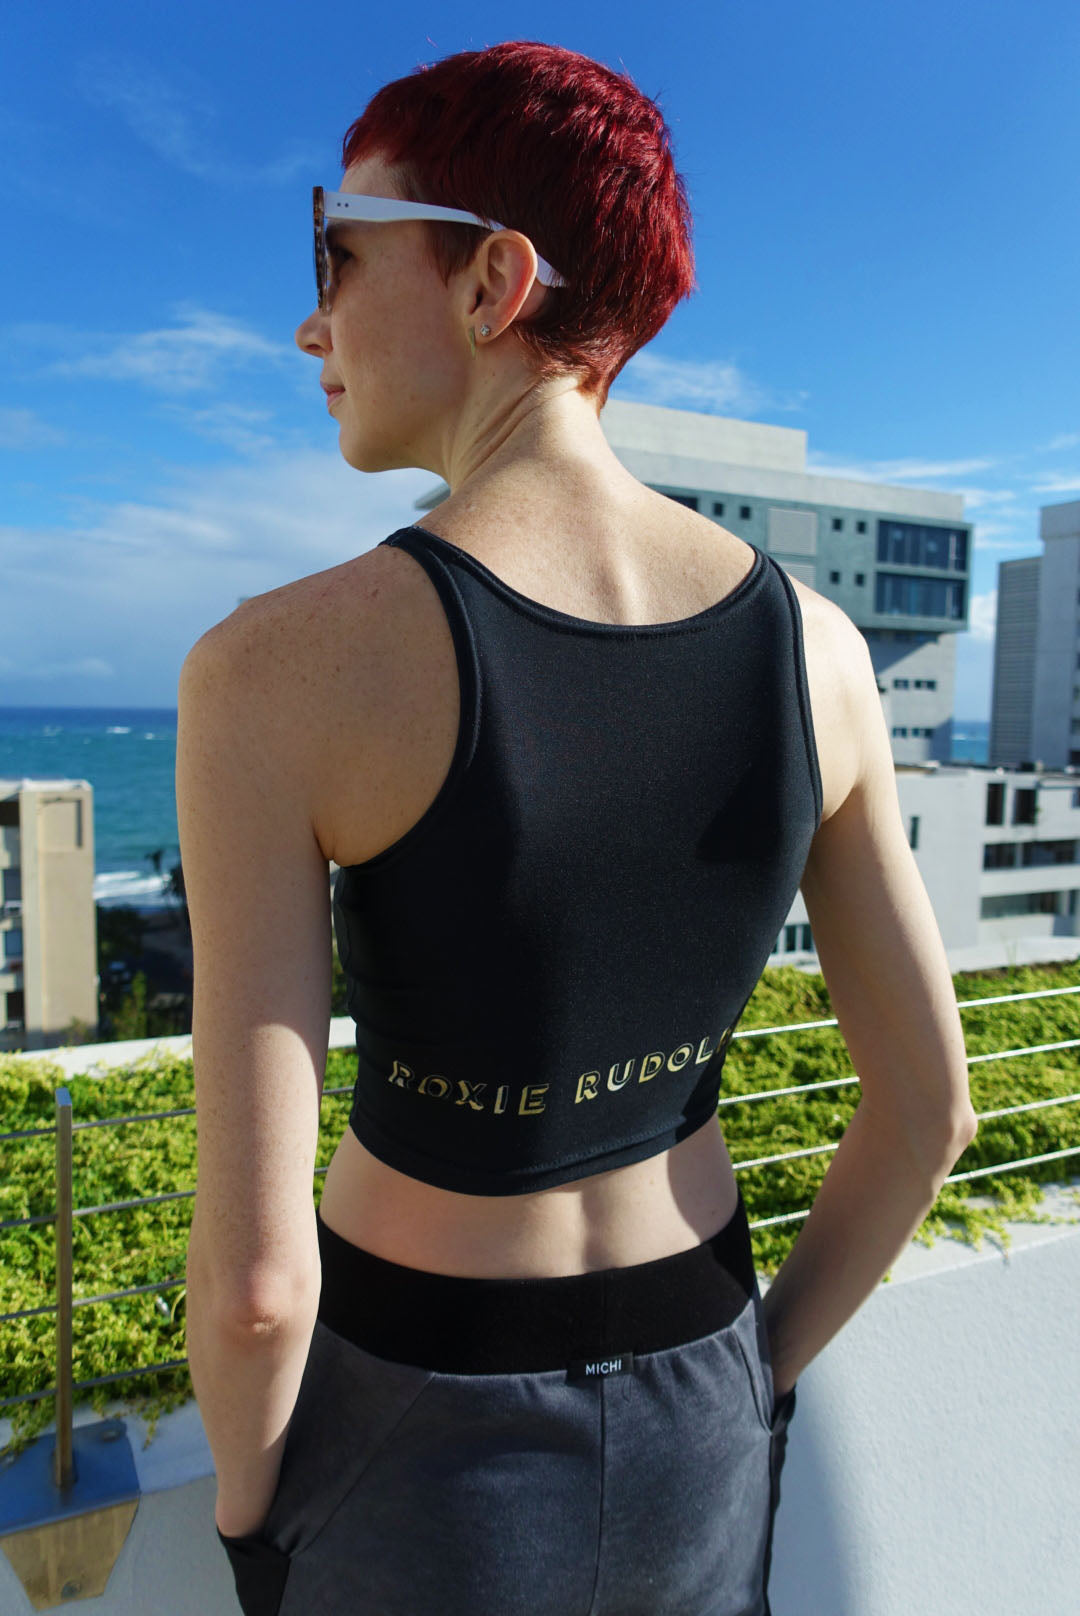 Gold Roxie Rudolph Logo Athletic Tank Athletic Crop Top  Roxie Rudolph Roxie Rudolph Roxie Rudolph